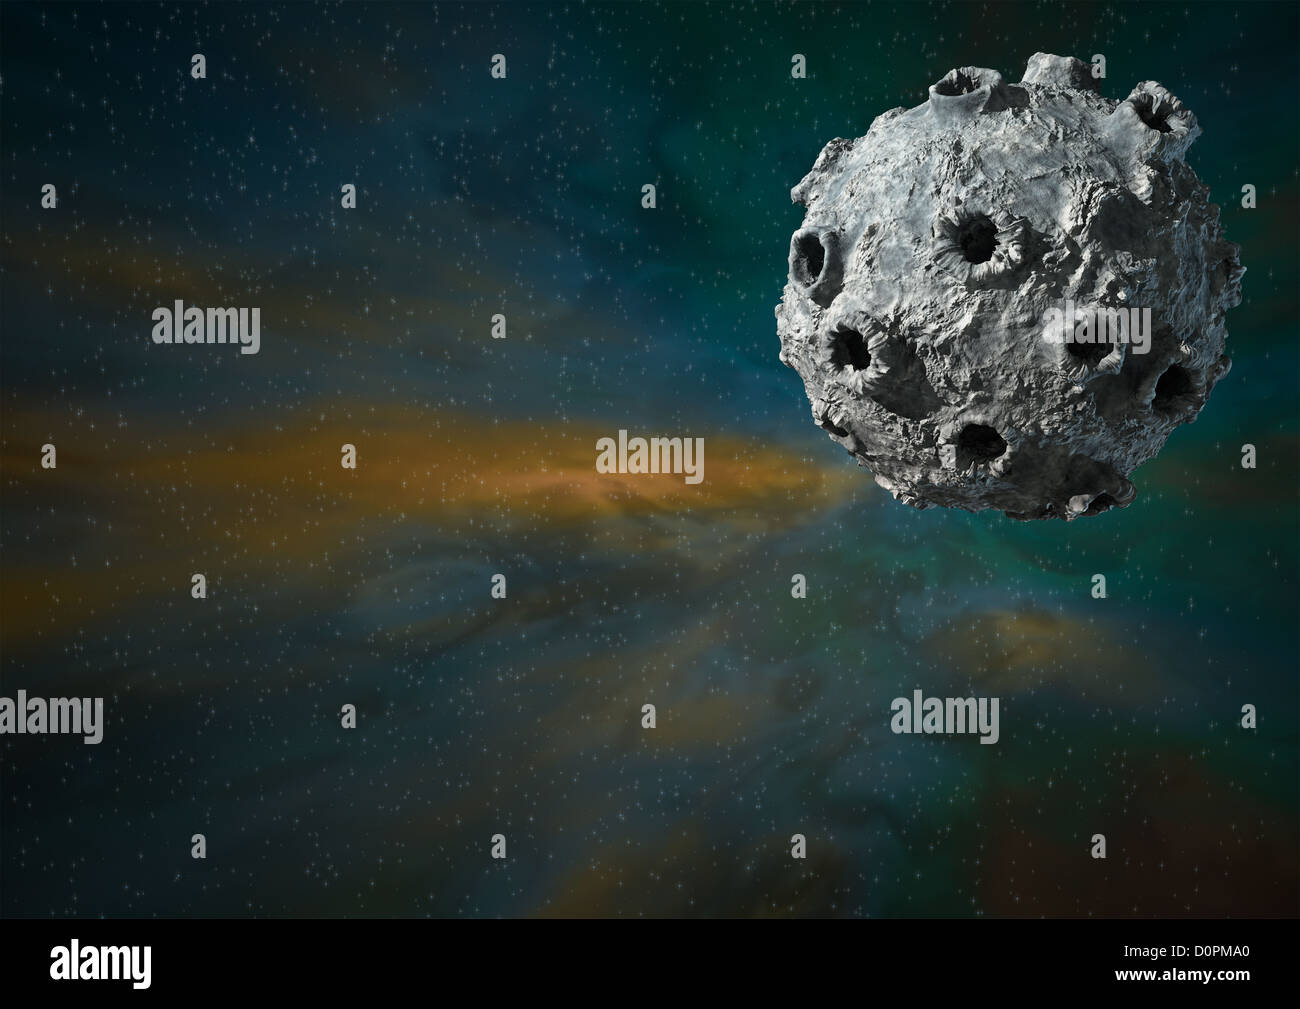 Space, moon, stars, CGI, model, cartoon moon, - Stock Image